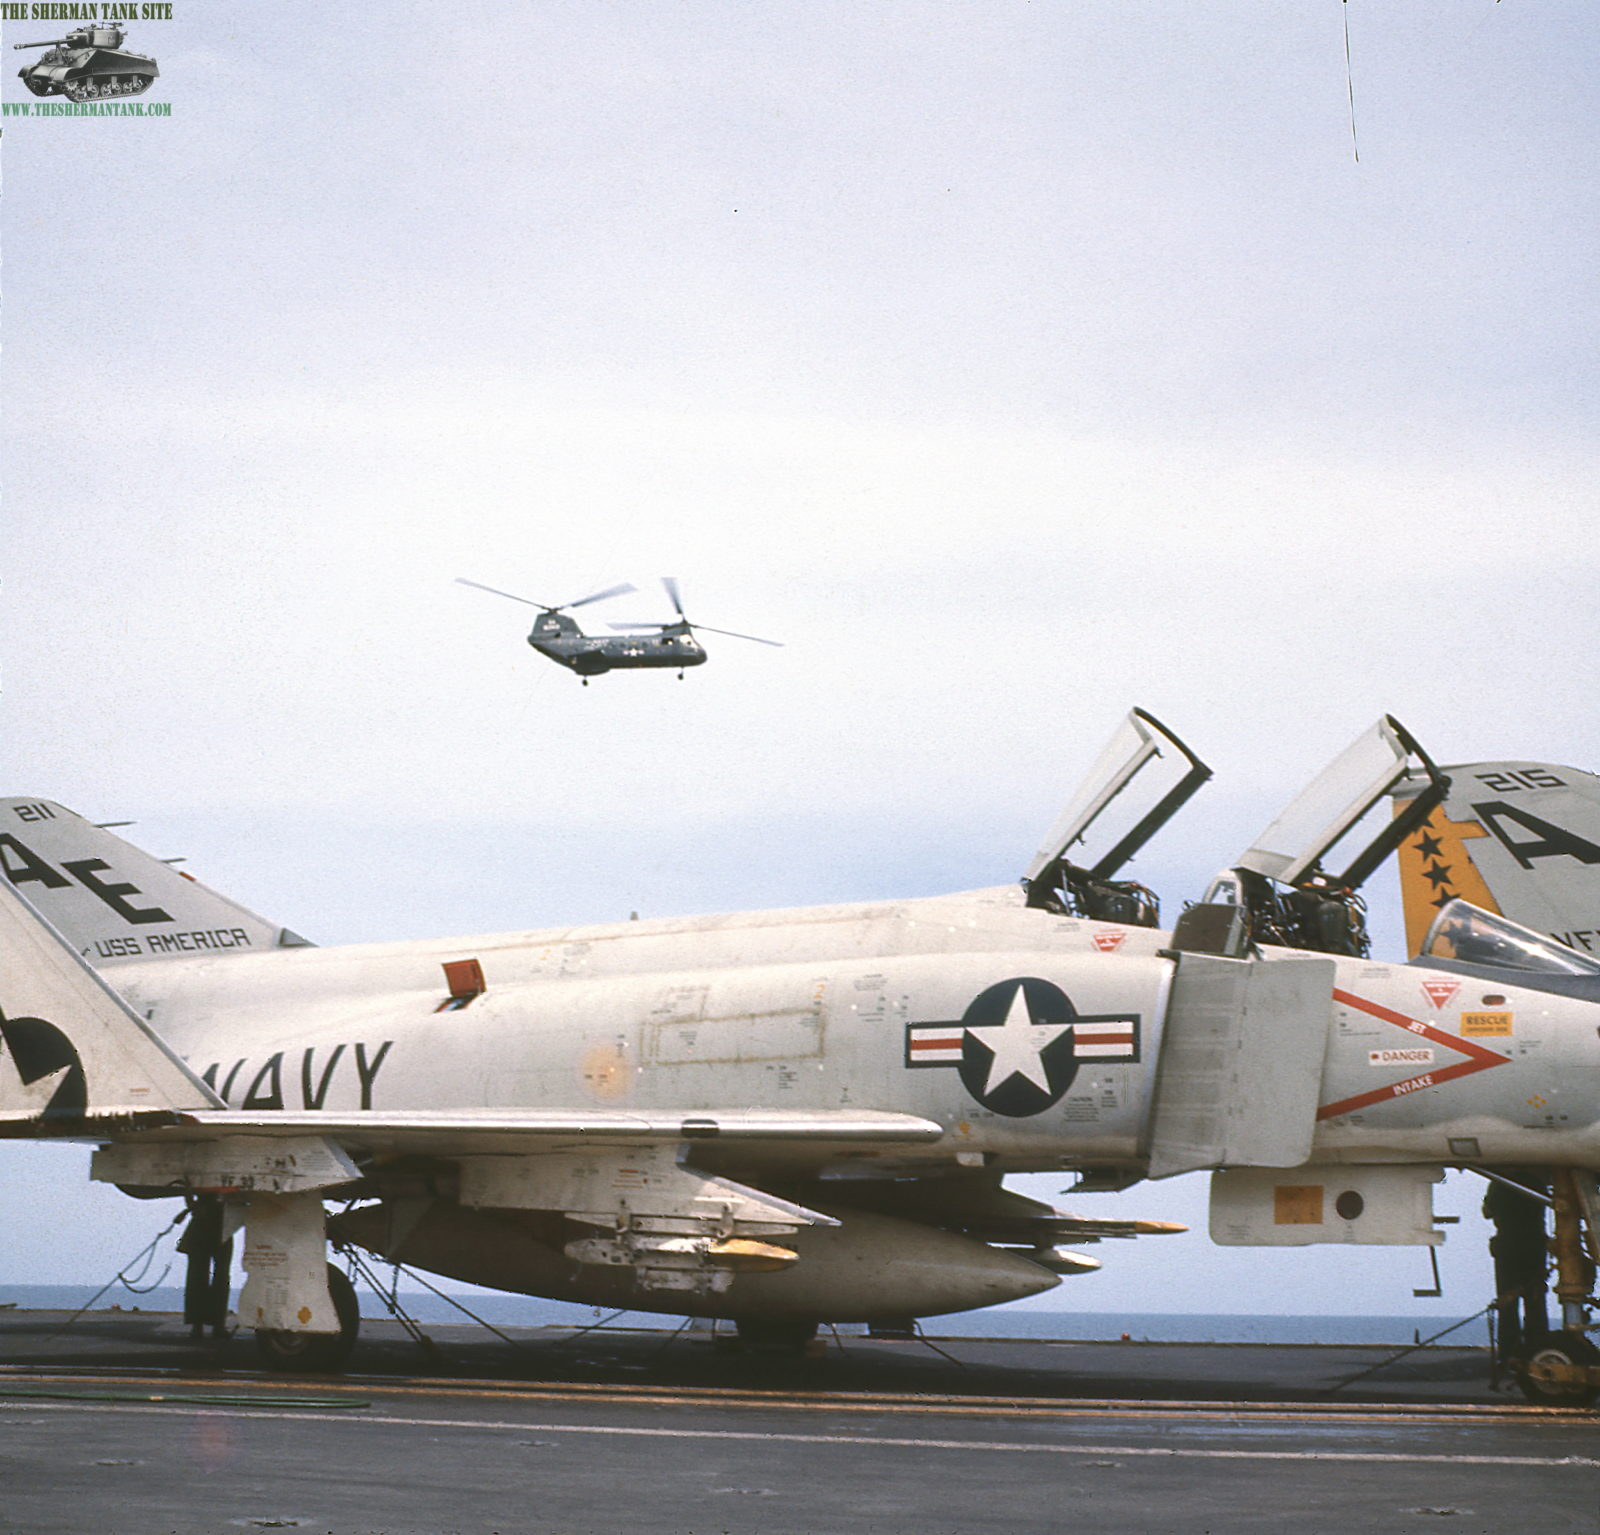 Old-Navy-PicsII090-F4j-Phantom-Vf-33-Ame